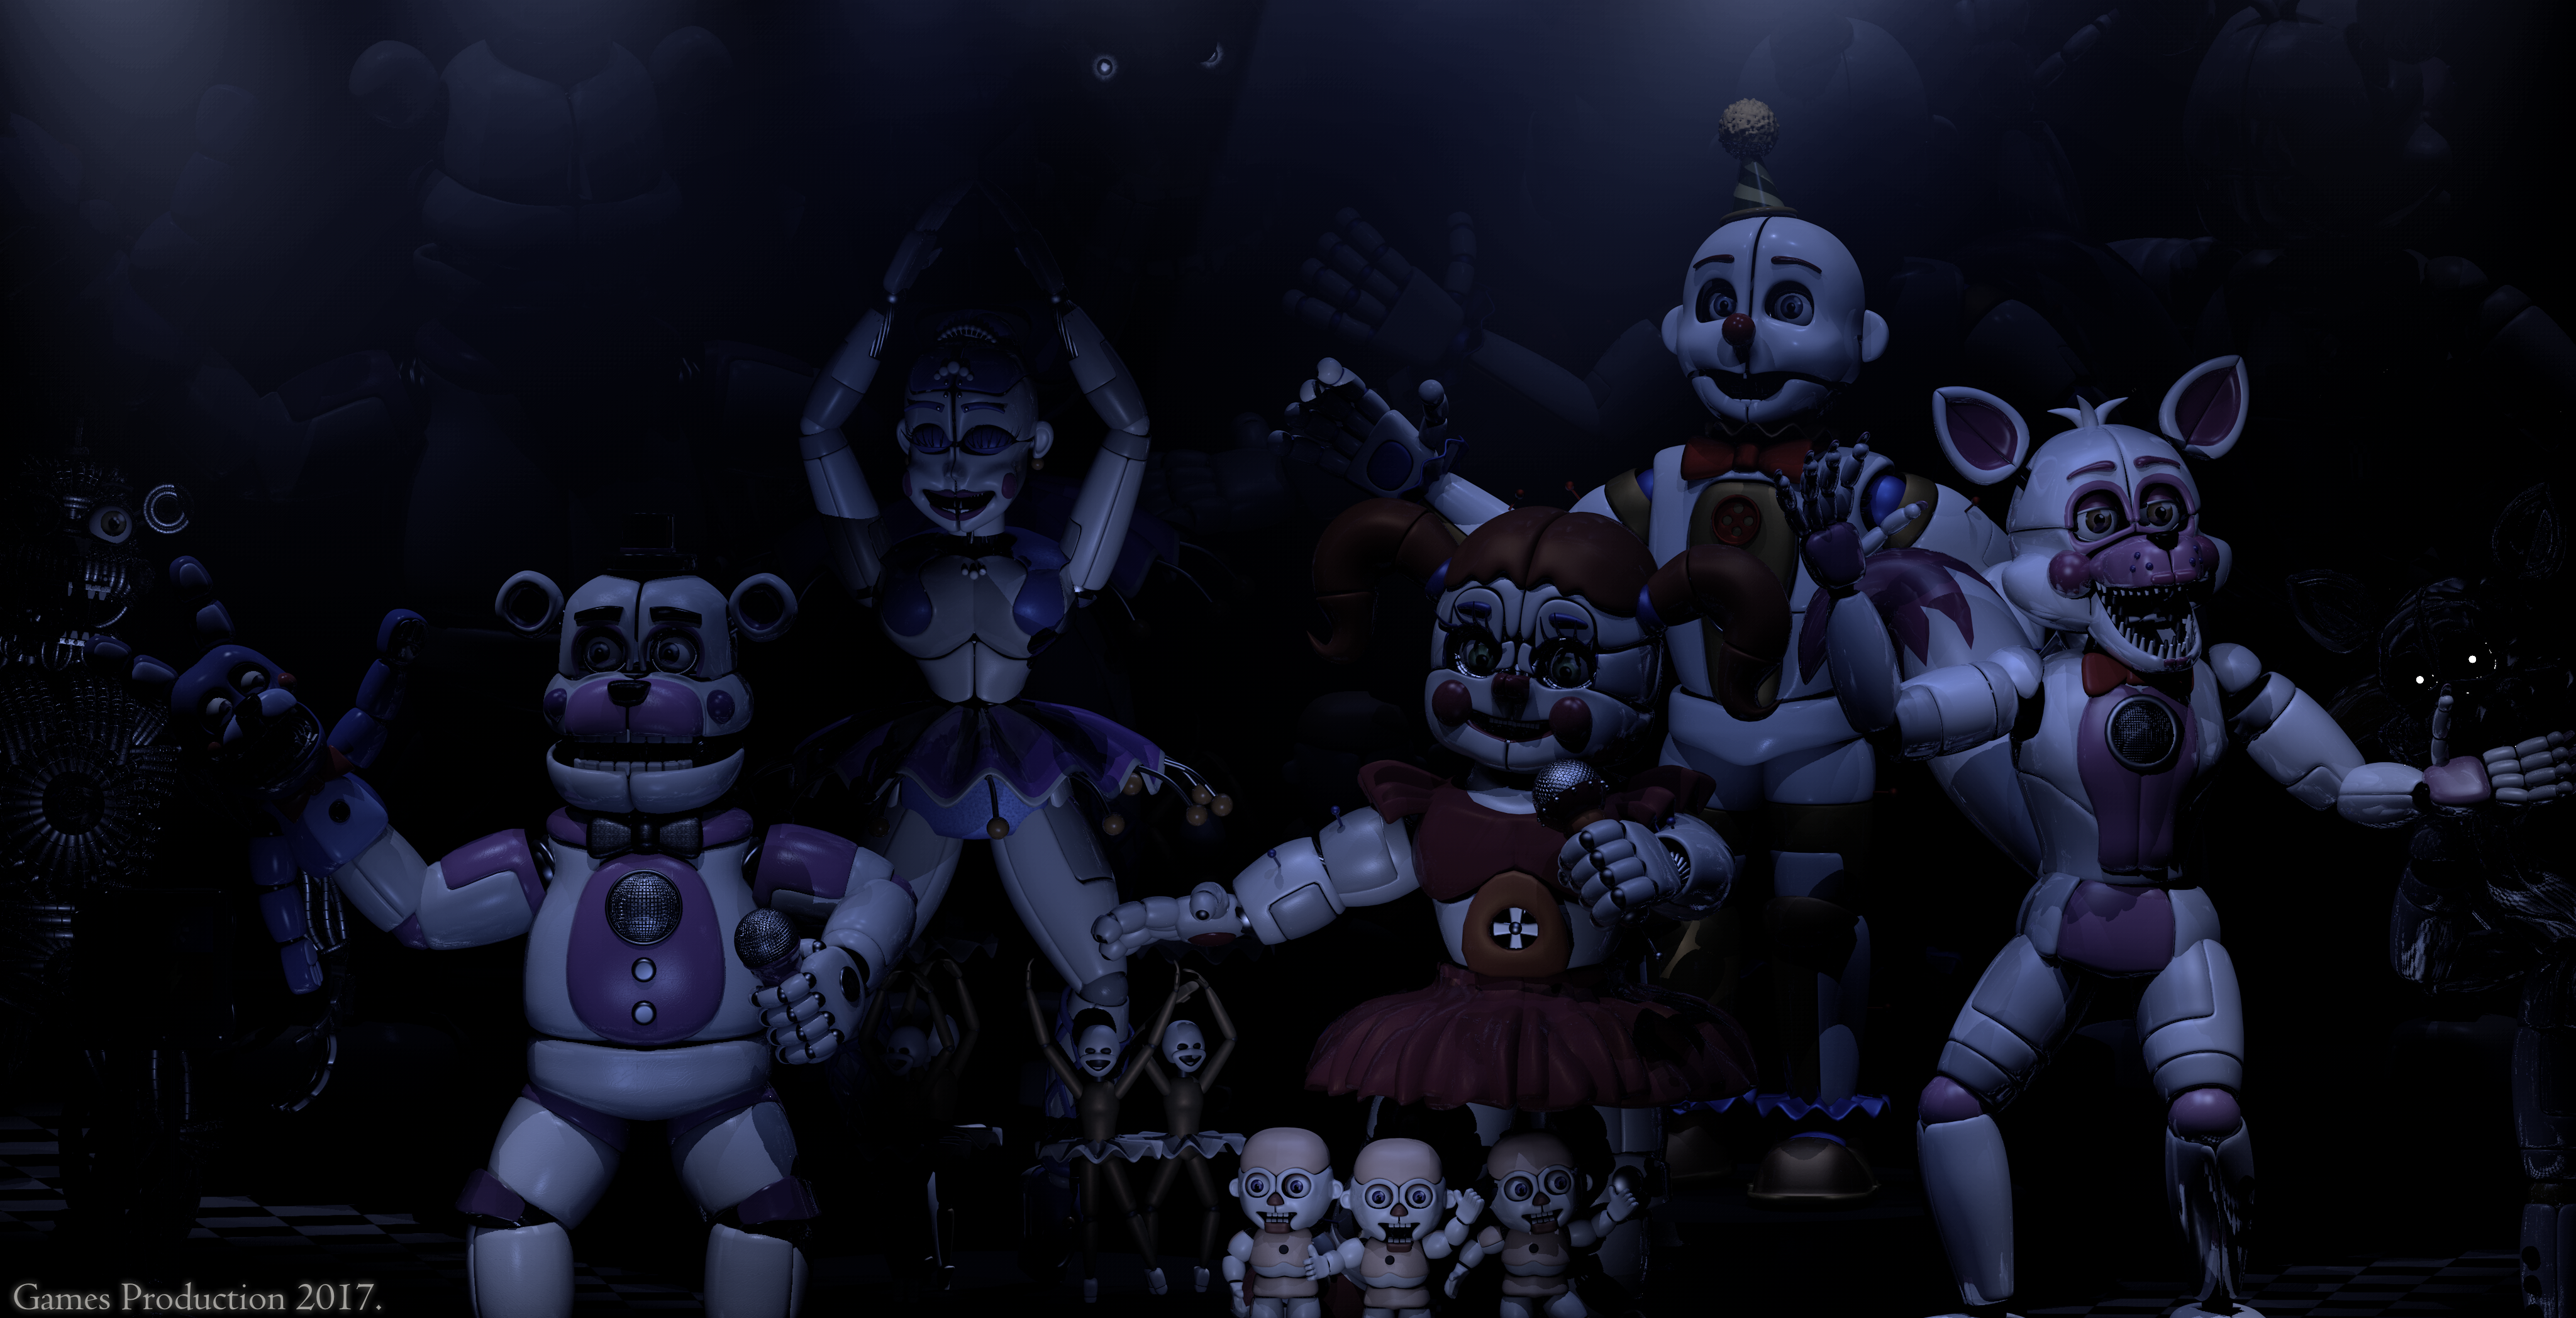 Toy Room Storage The Final Show Fnaf Sl Wallpaper By Gamesproduction On